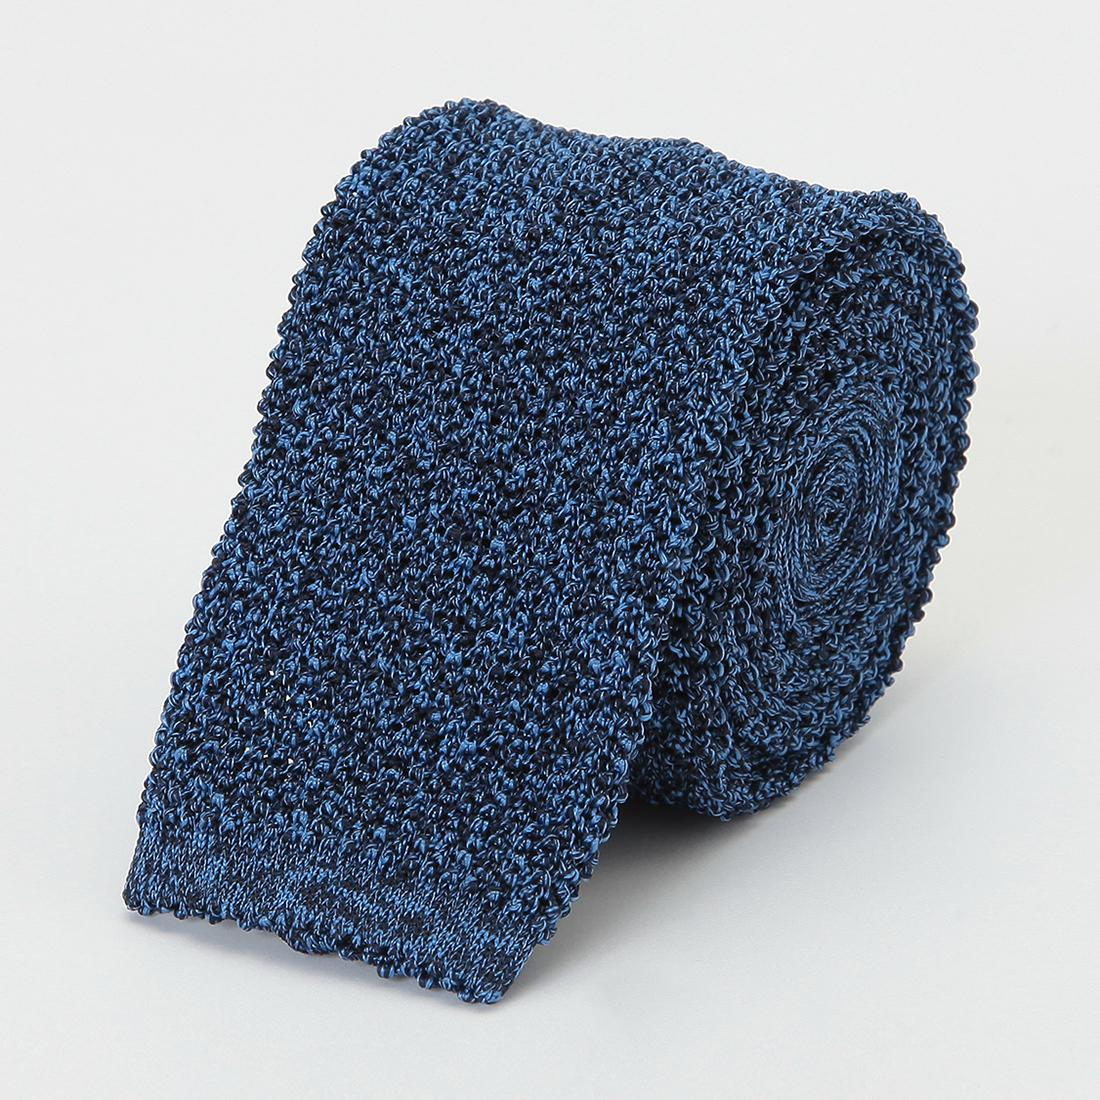 Barneys New York Silk Melange Knit Tie 2011115: Navy